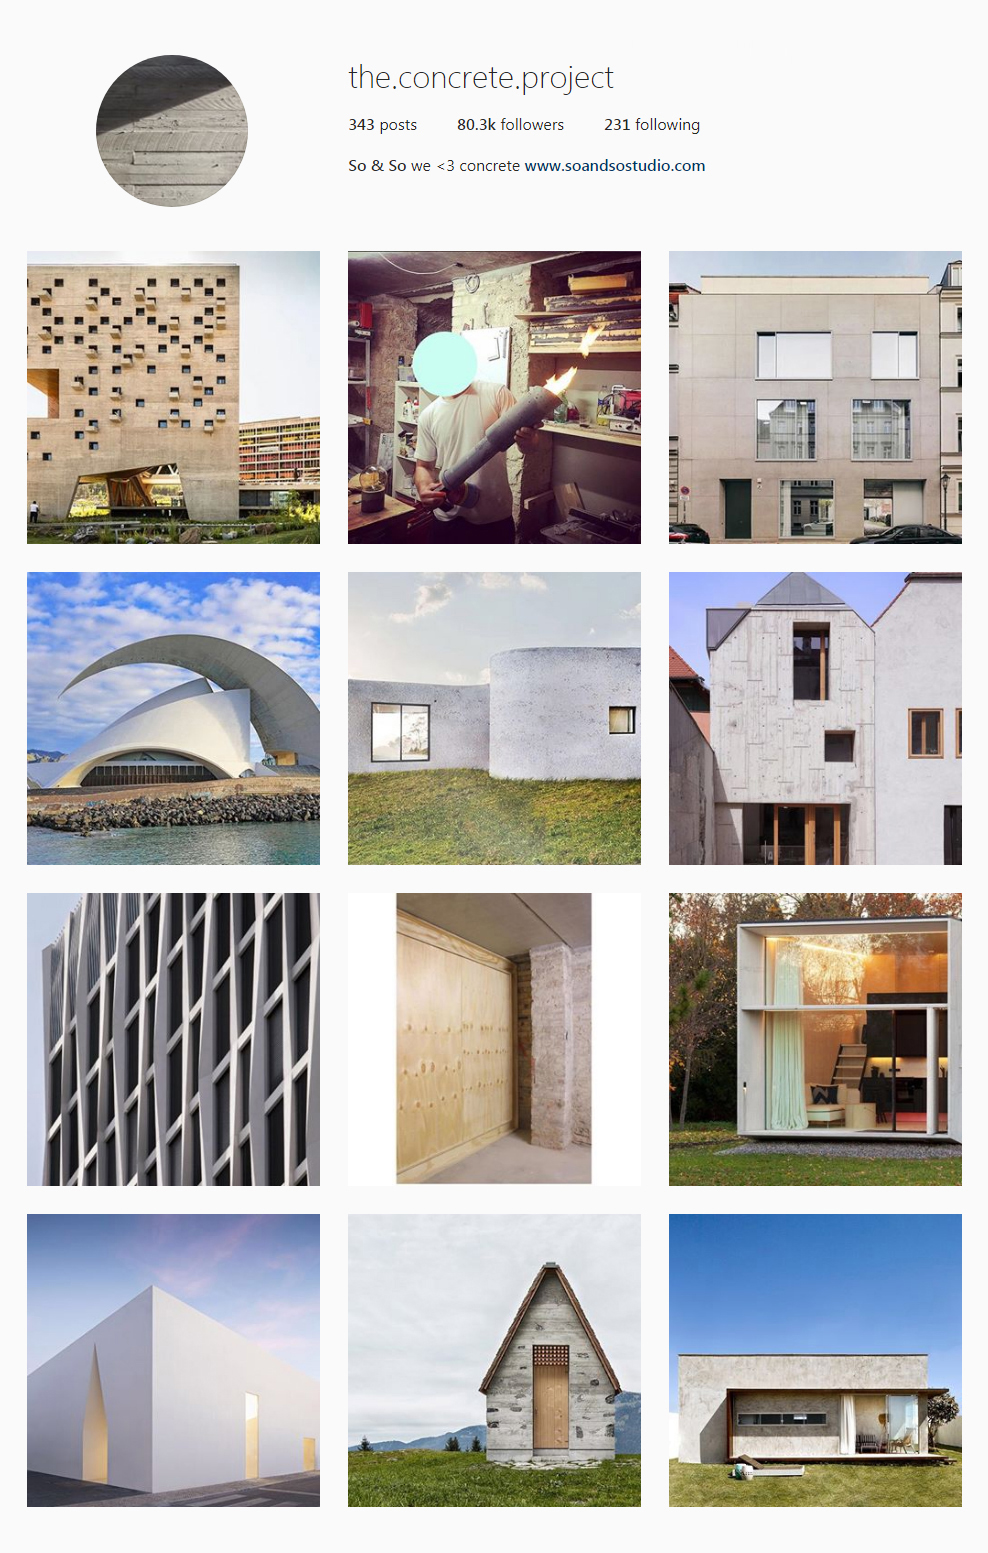 Best Architectural Instagram Feeds of 2017 - the concrete project